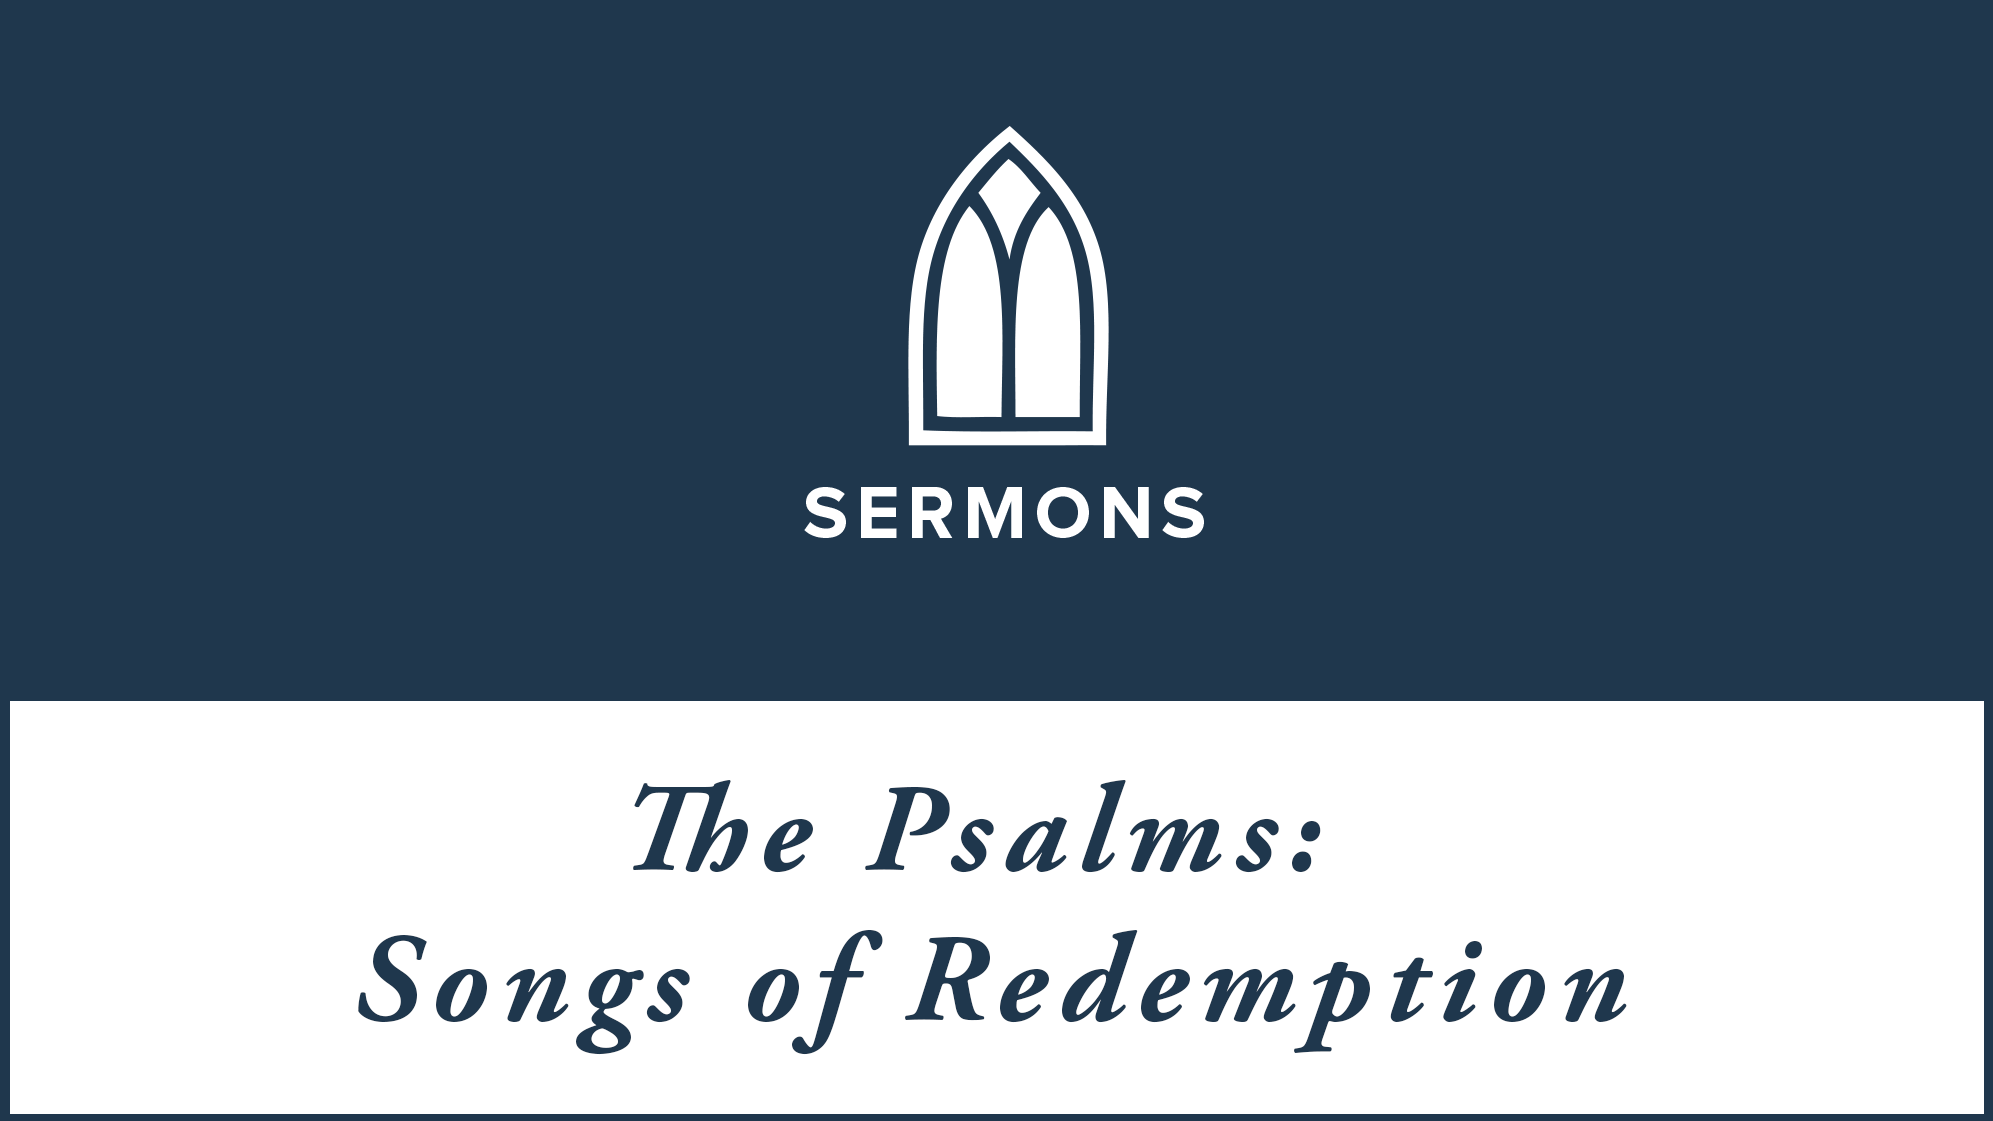 Psalms-Songs-of-Redemption-16x9.png